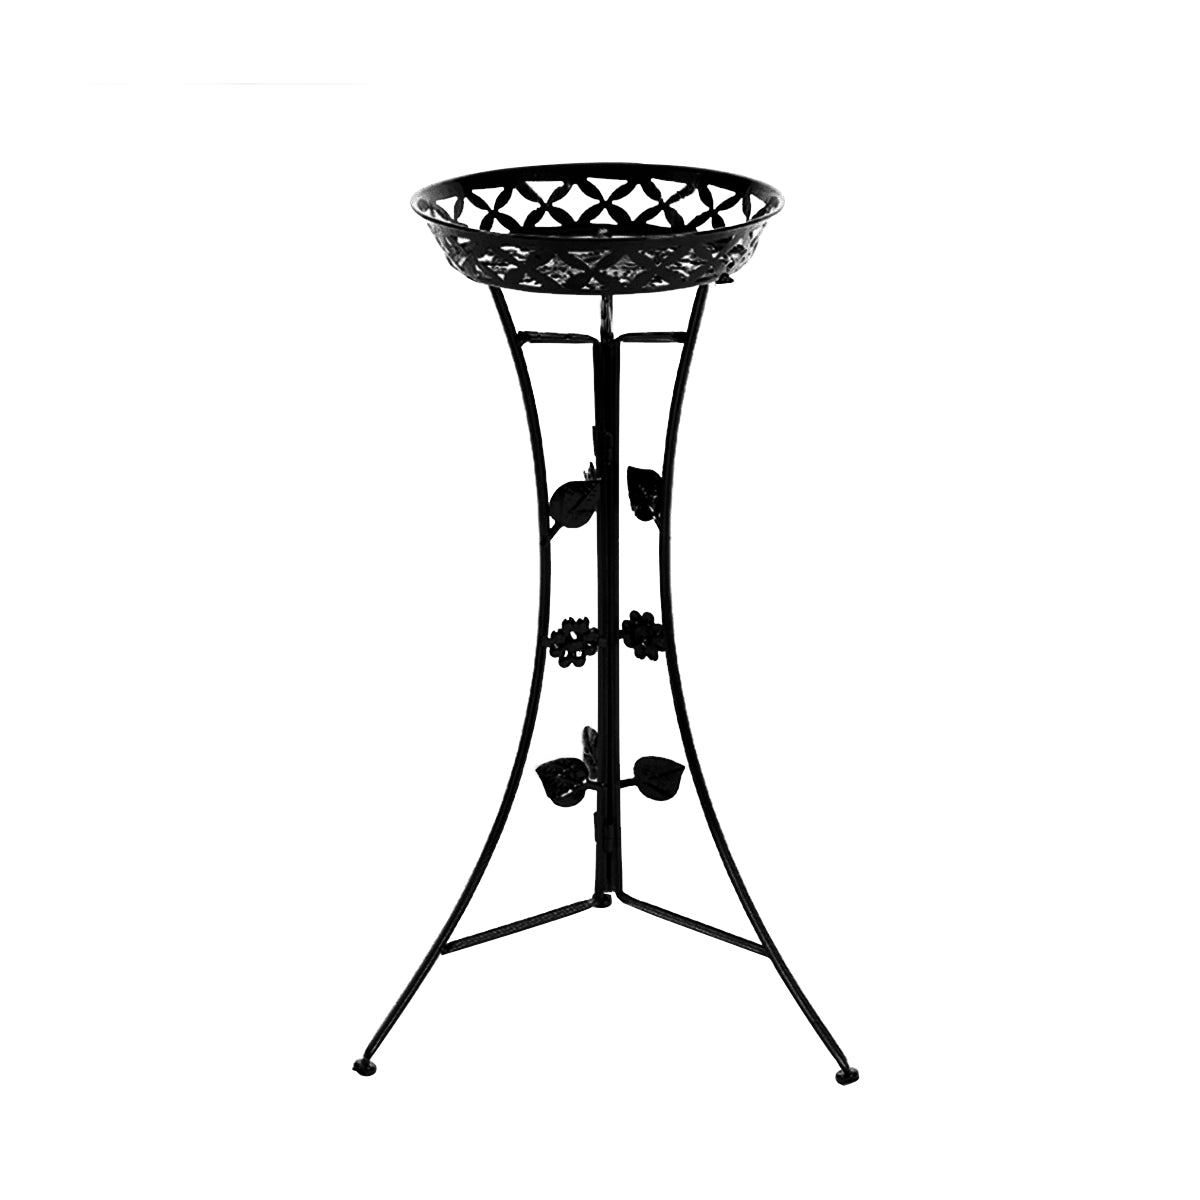 Metal Plant Stand Garden Decorations Outdoor Black